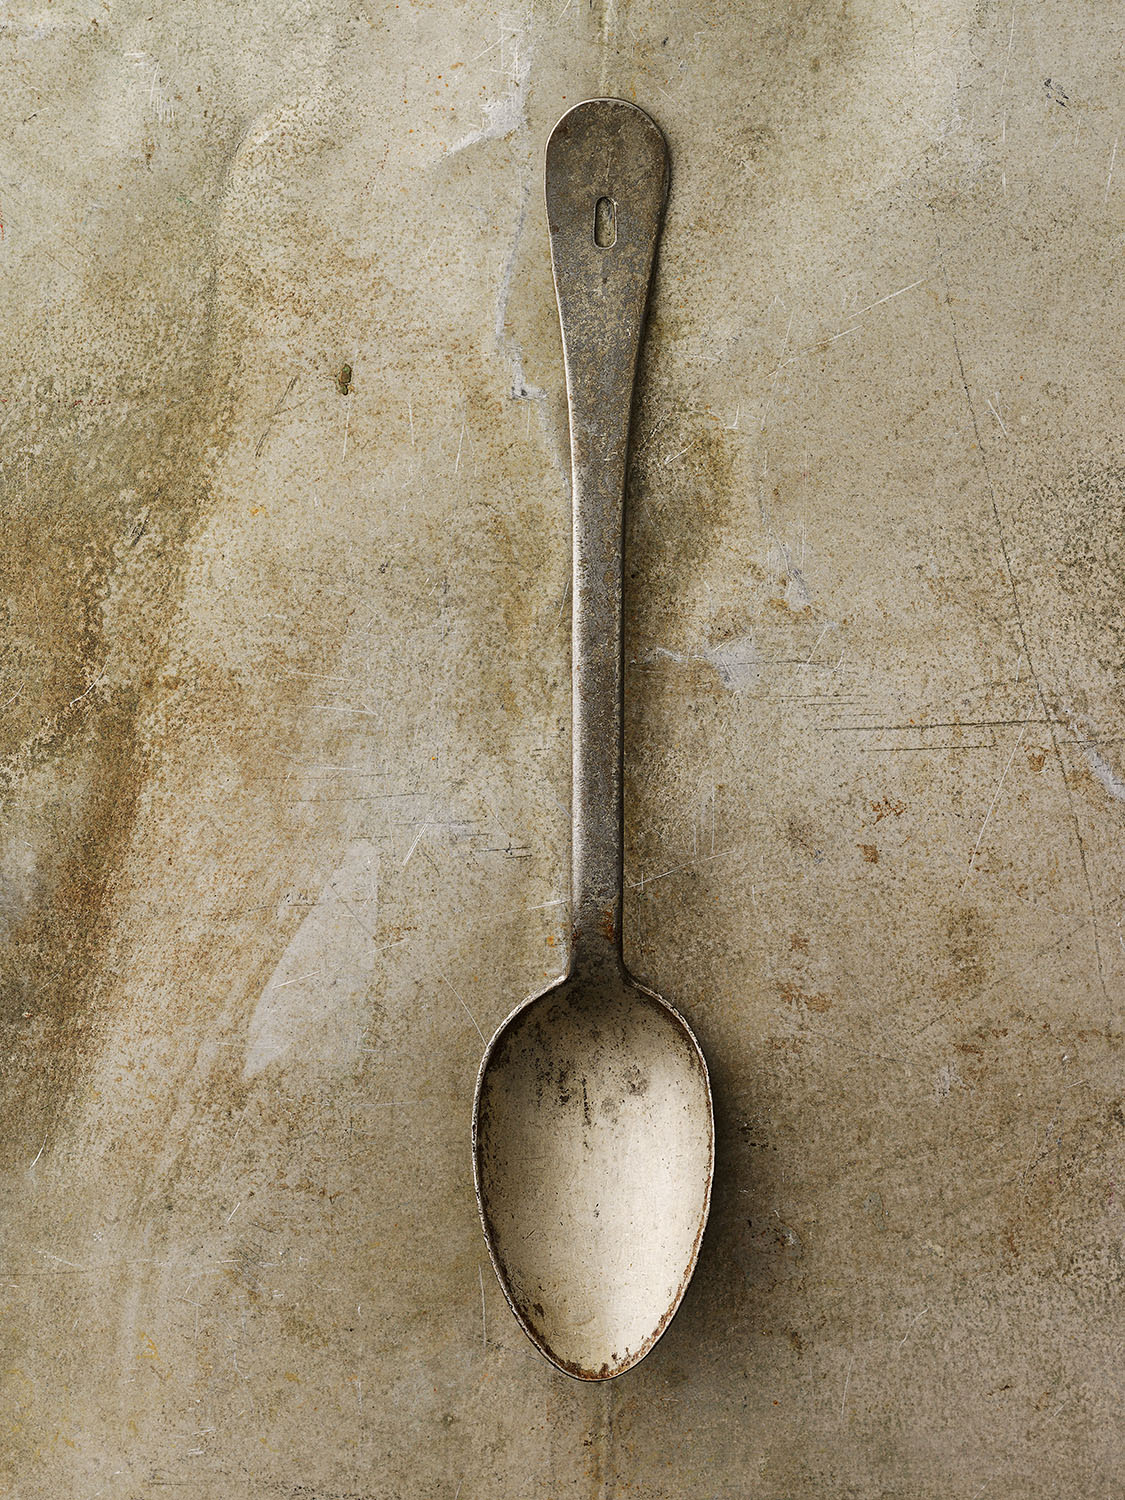 #5 Large Serving Spoon